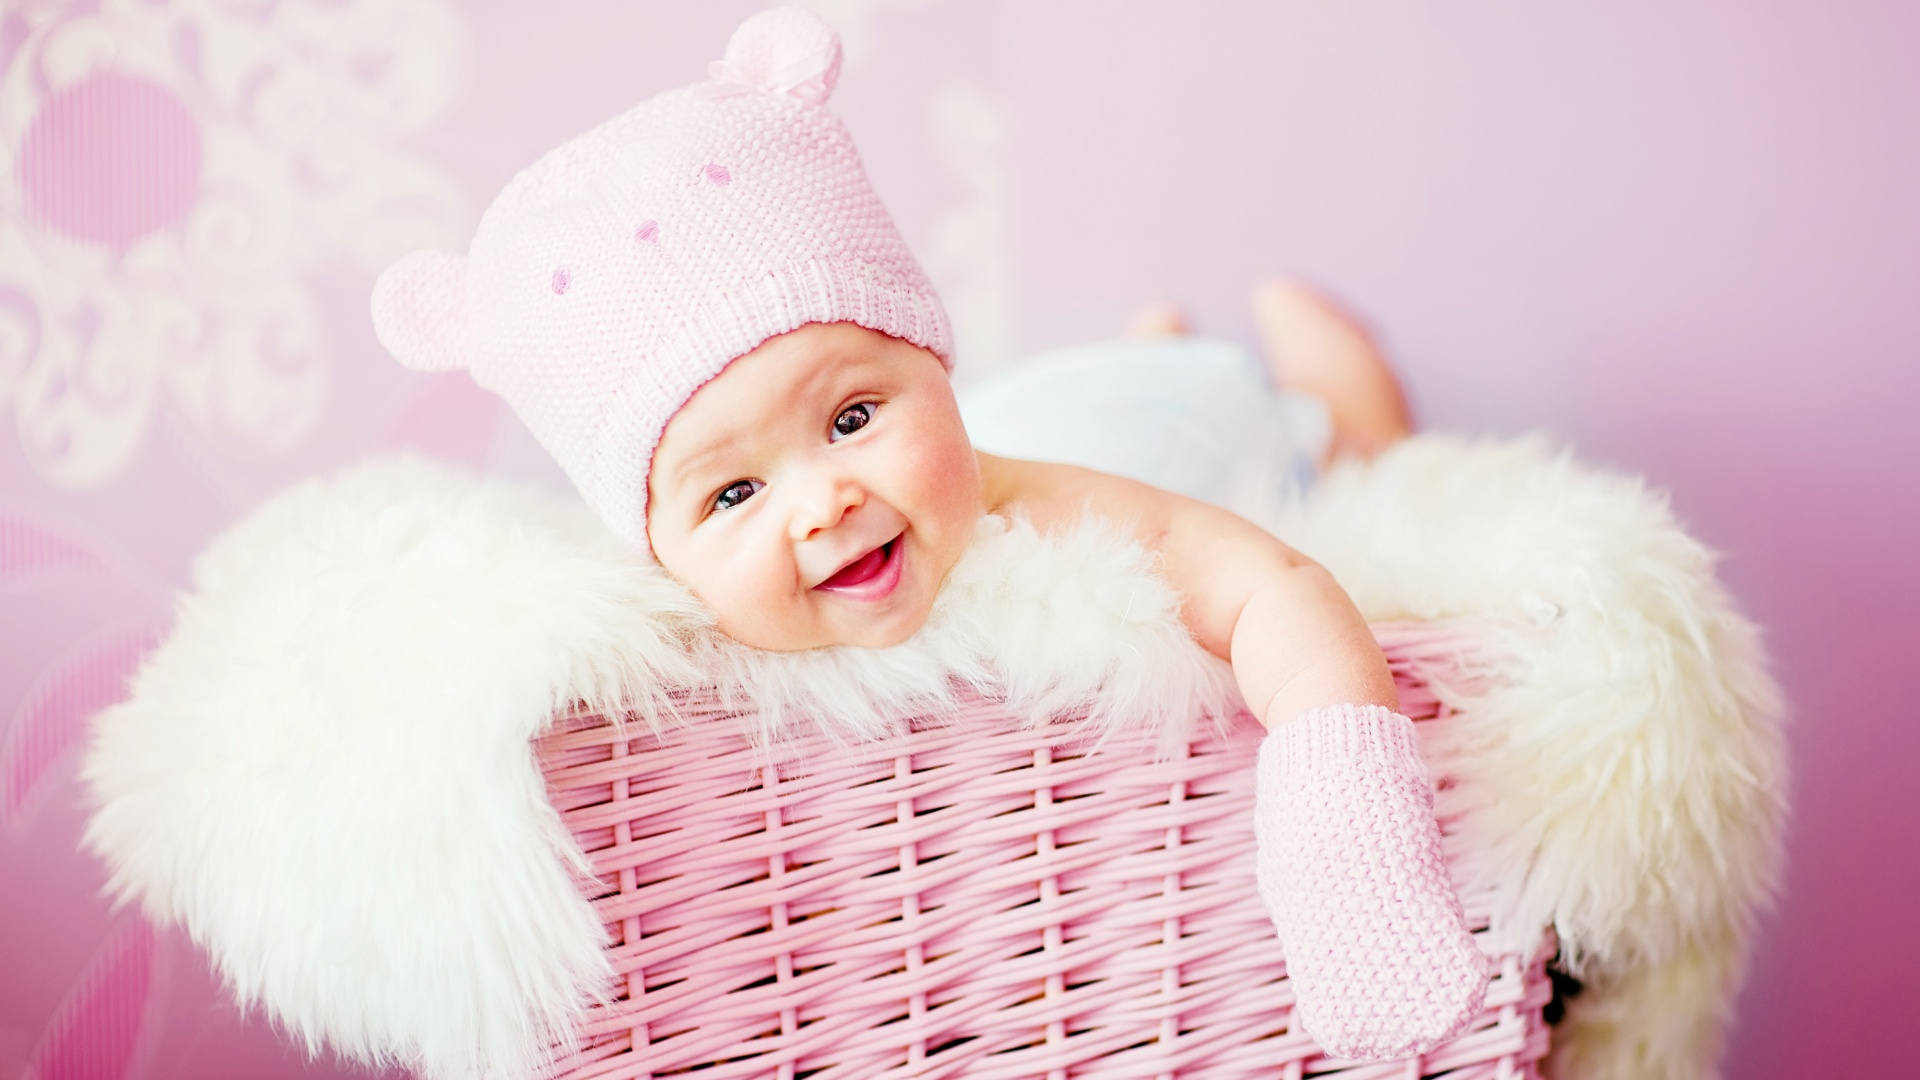 Cute-Laughing-Baby-1920-x-1080-Need-iPhone-S-Plus-Background-for-IPhoneSPlus-F-wallpaper-wp3604466